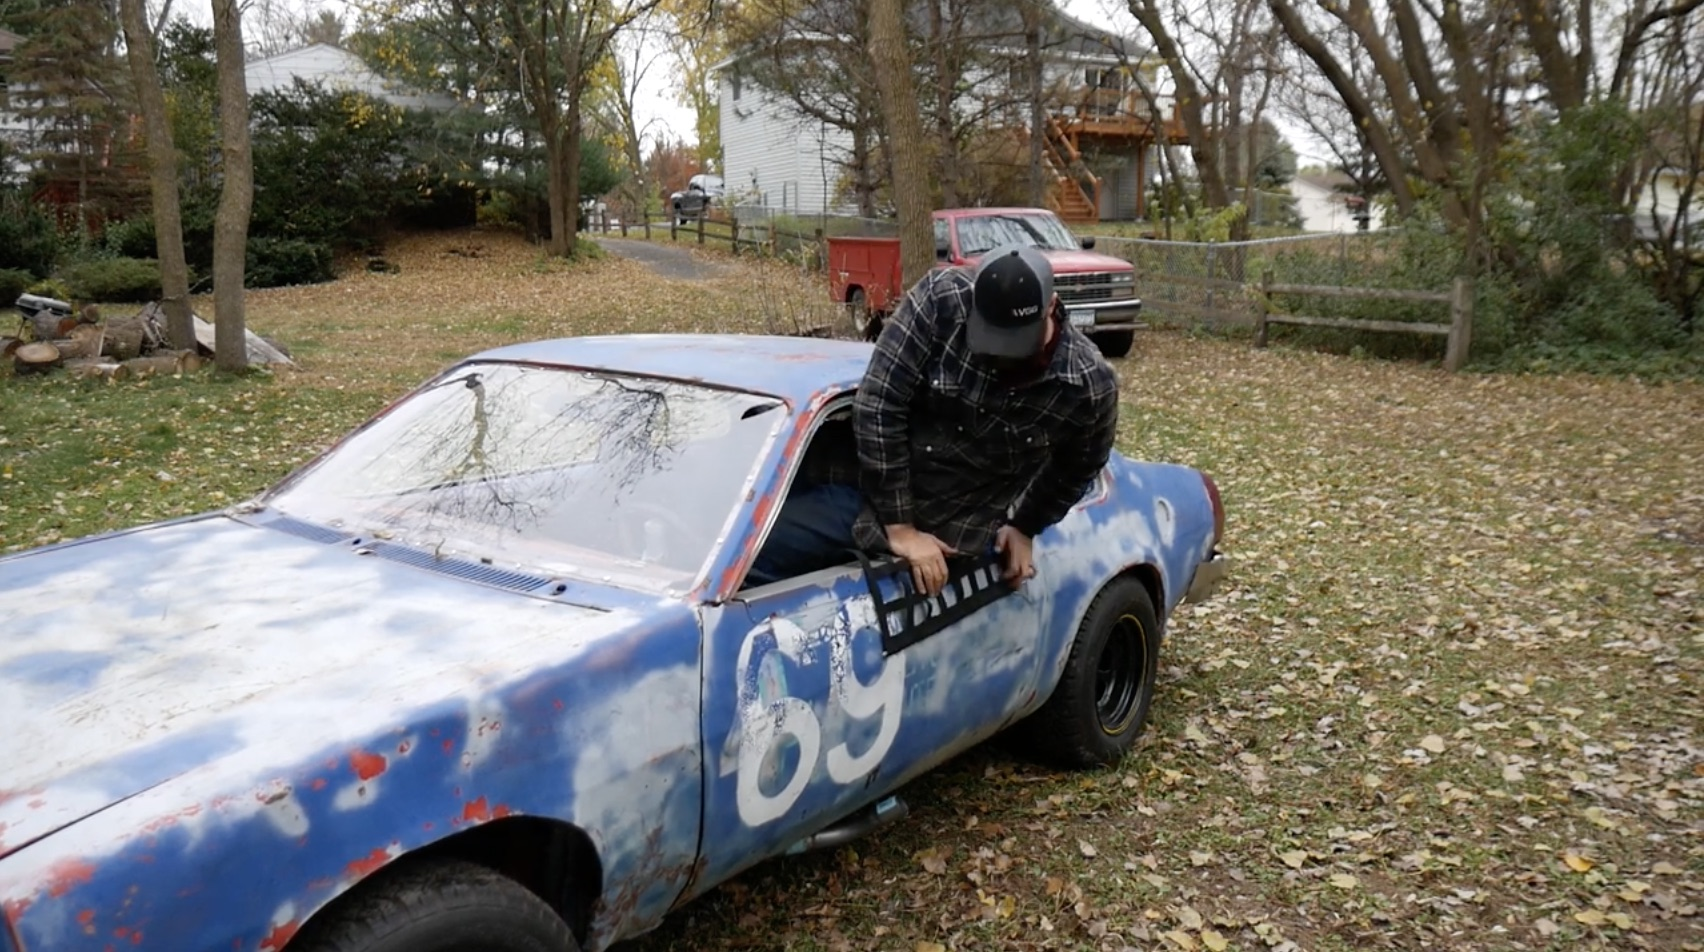 Cheap Race Car Equals Happiness: Prepping A Monza For Legal Racing!